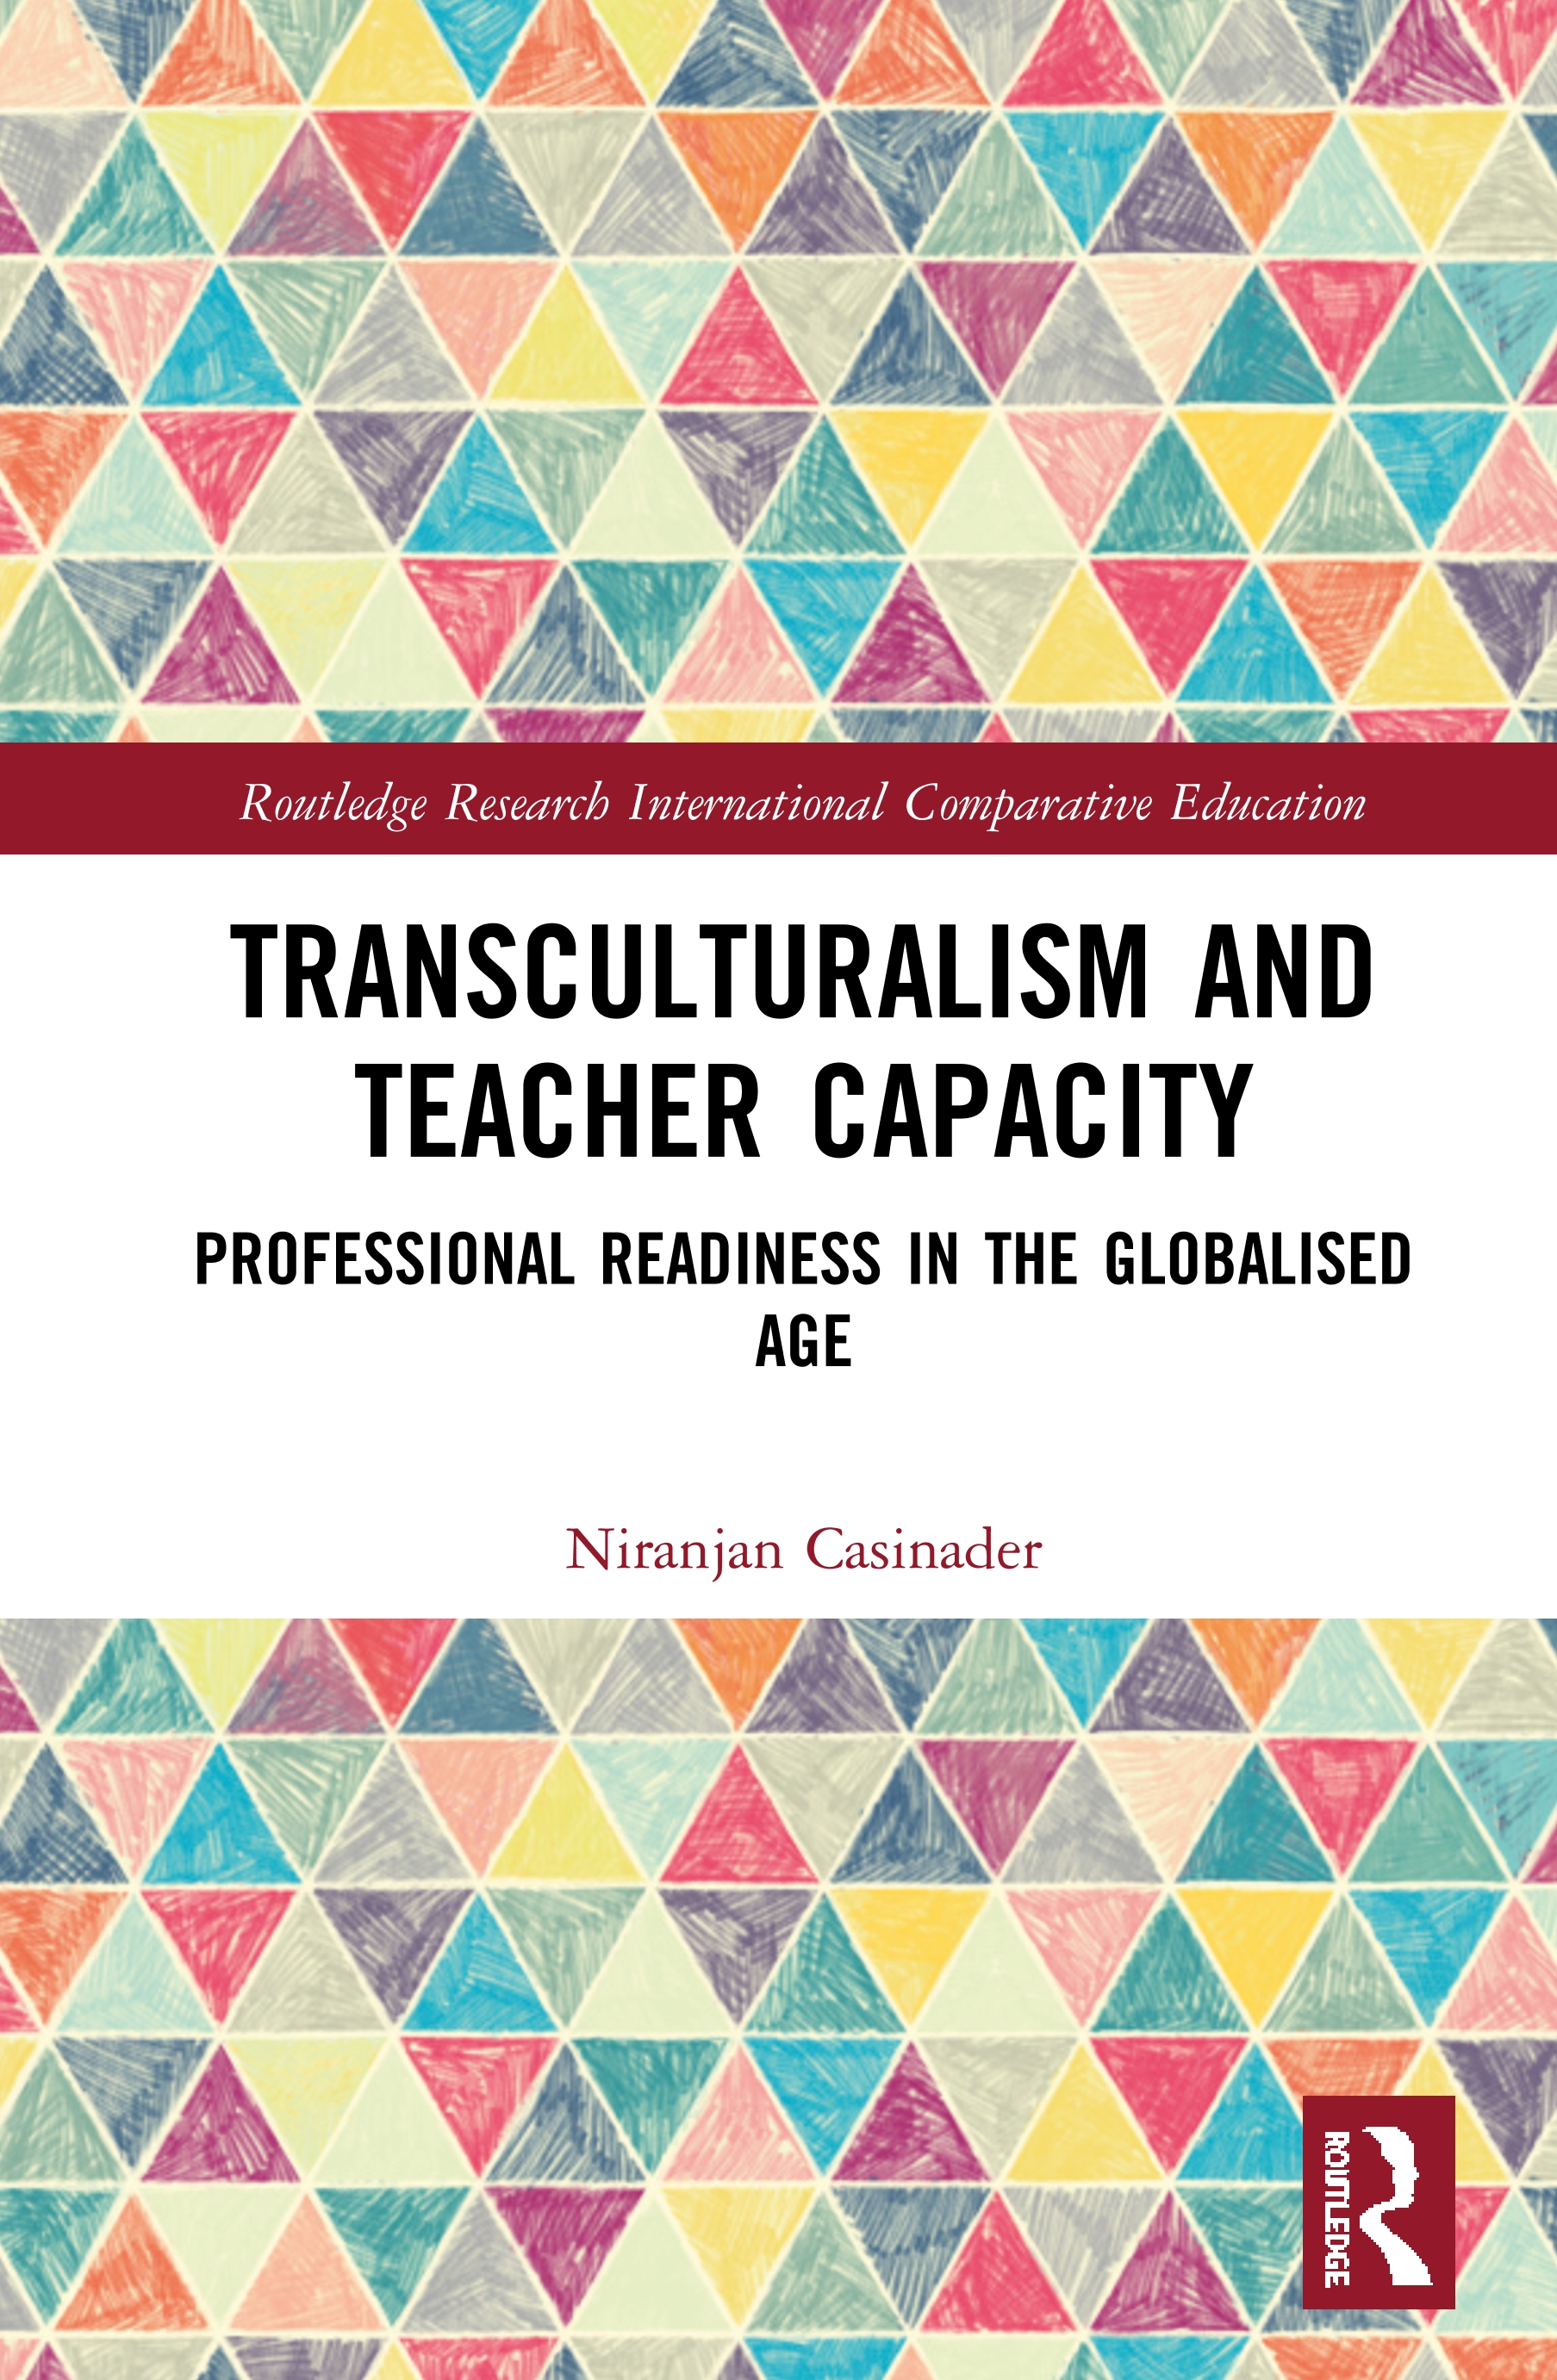 Transculturalism and Teacher Capacity: Professional Readiness in the Globalised Age book cover